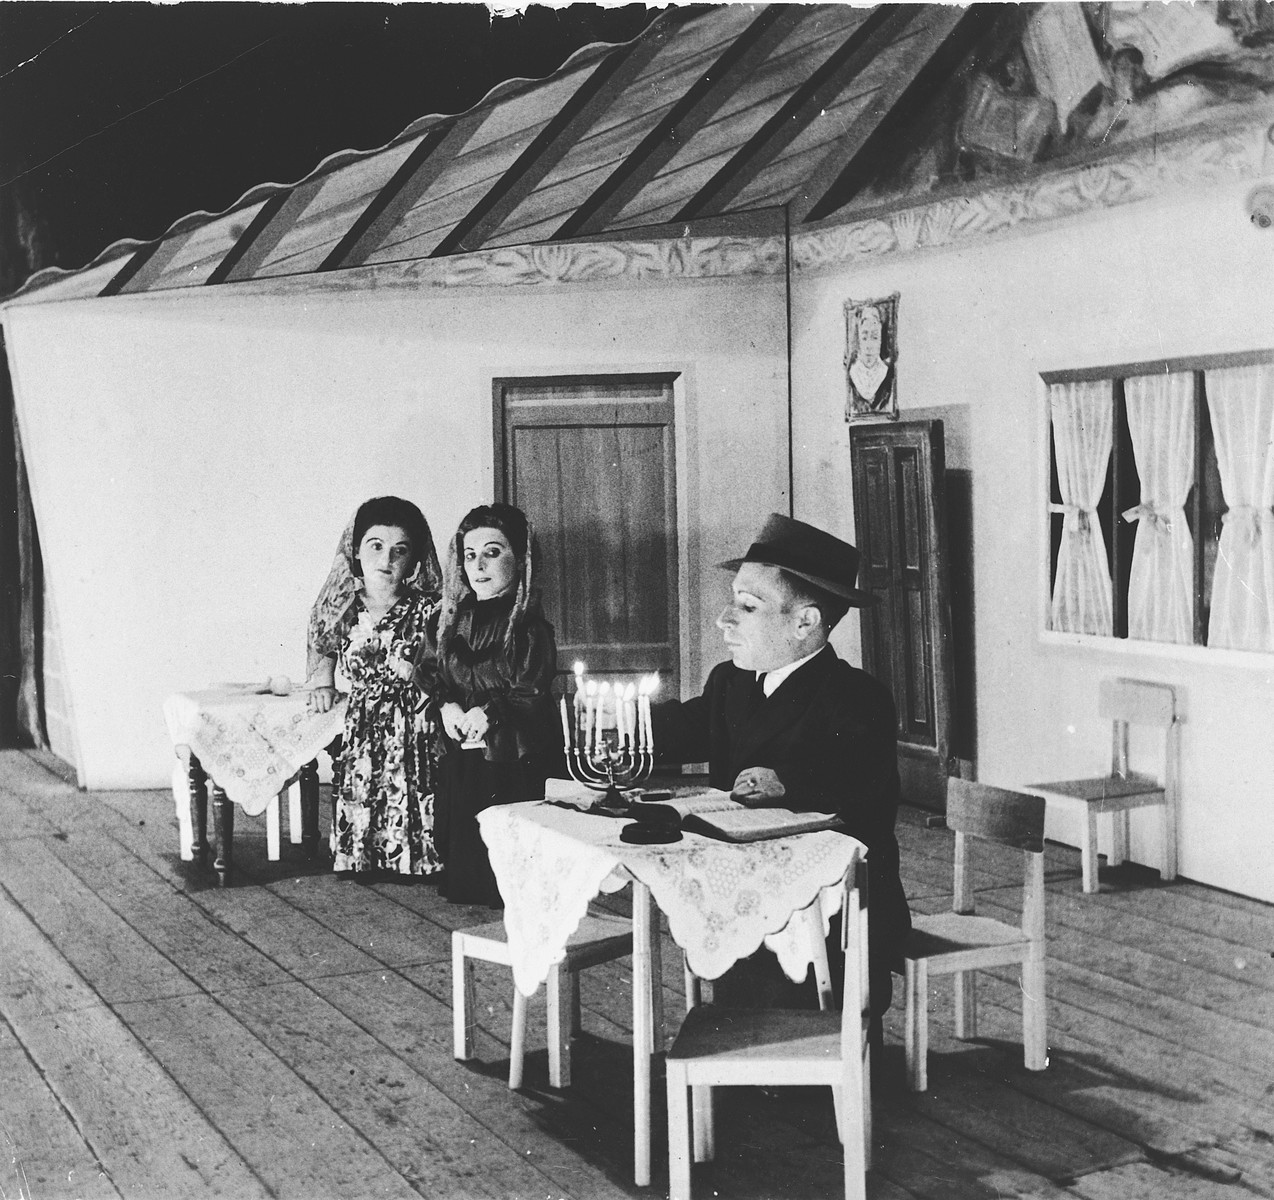 Members of the Ovici family, a family of Jewish dwarf entertainers who survived Auschwitz, perform a Hanukkah skit on stage.  Pictured from left to right are Perla, Elizabeth and Micki Ovici.